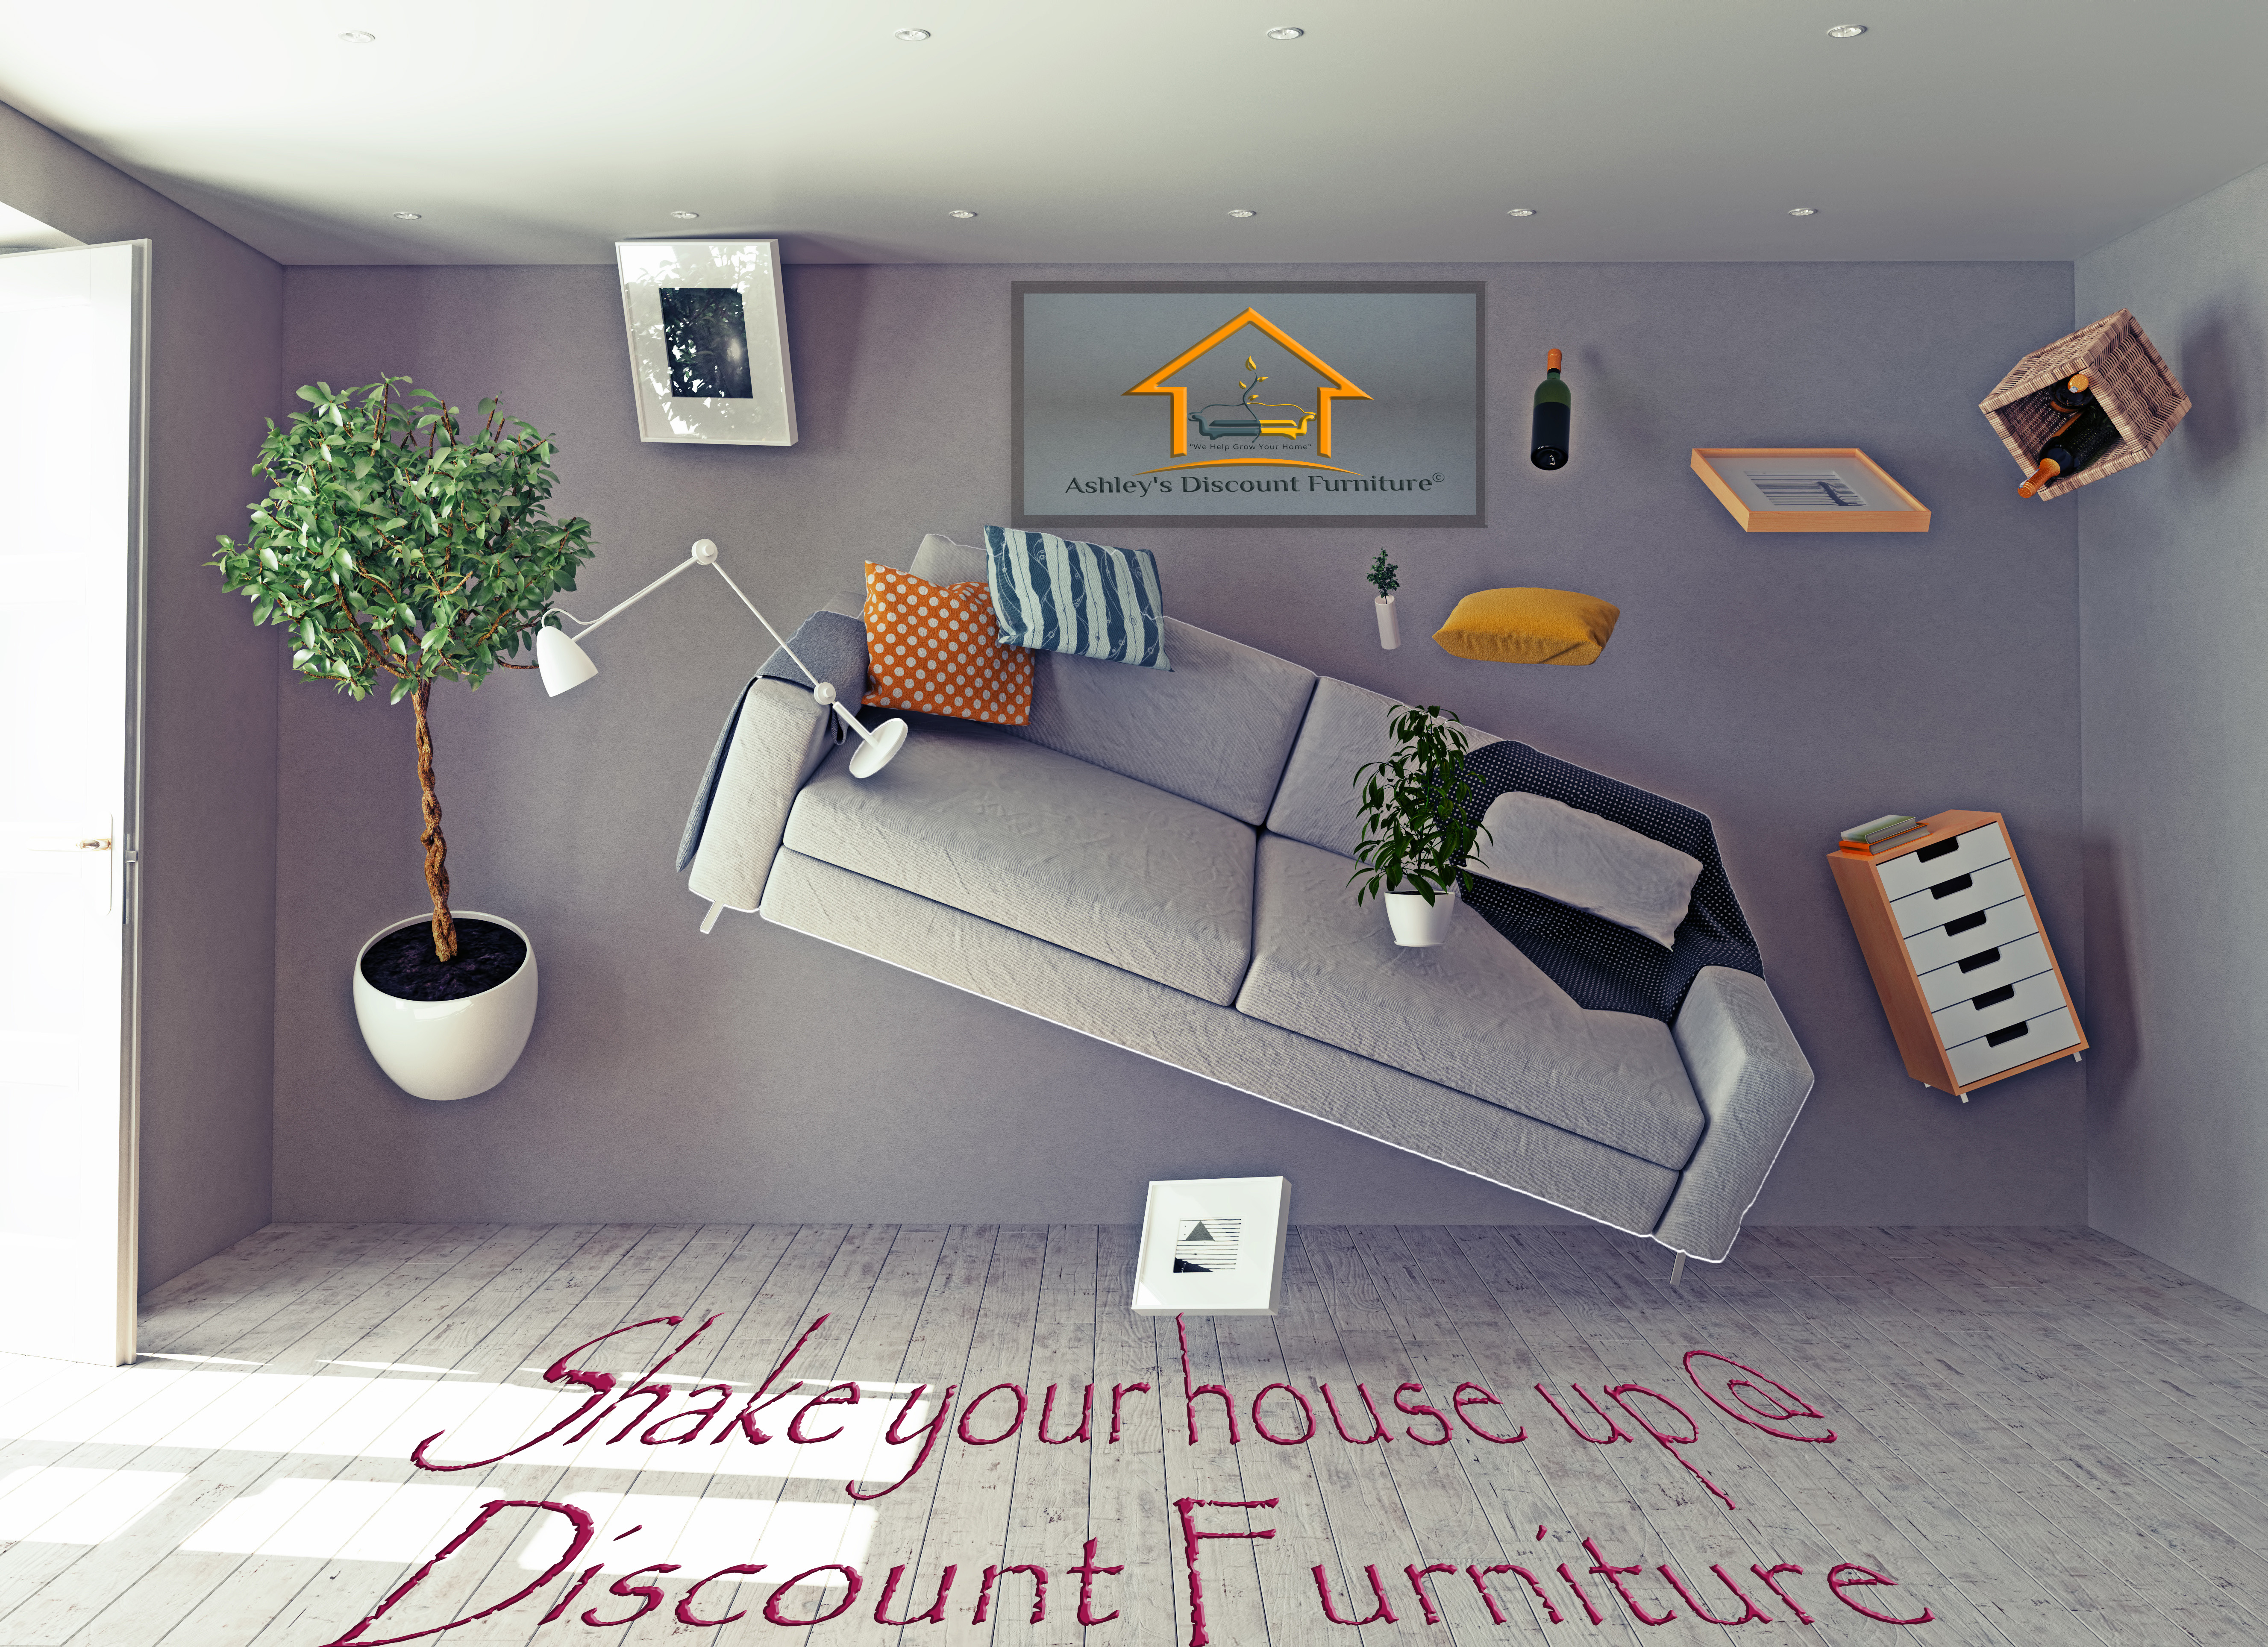 www.discountfurnitureaurora.com